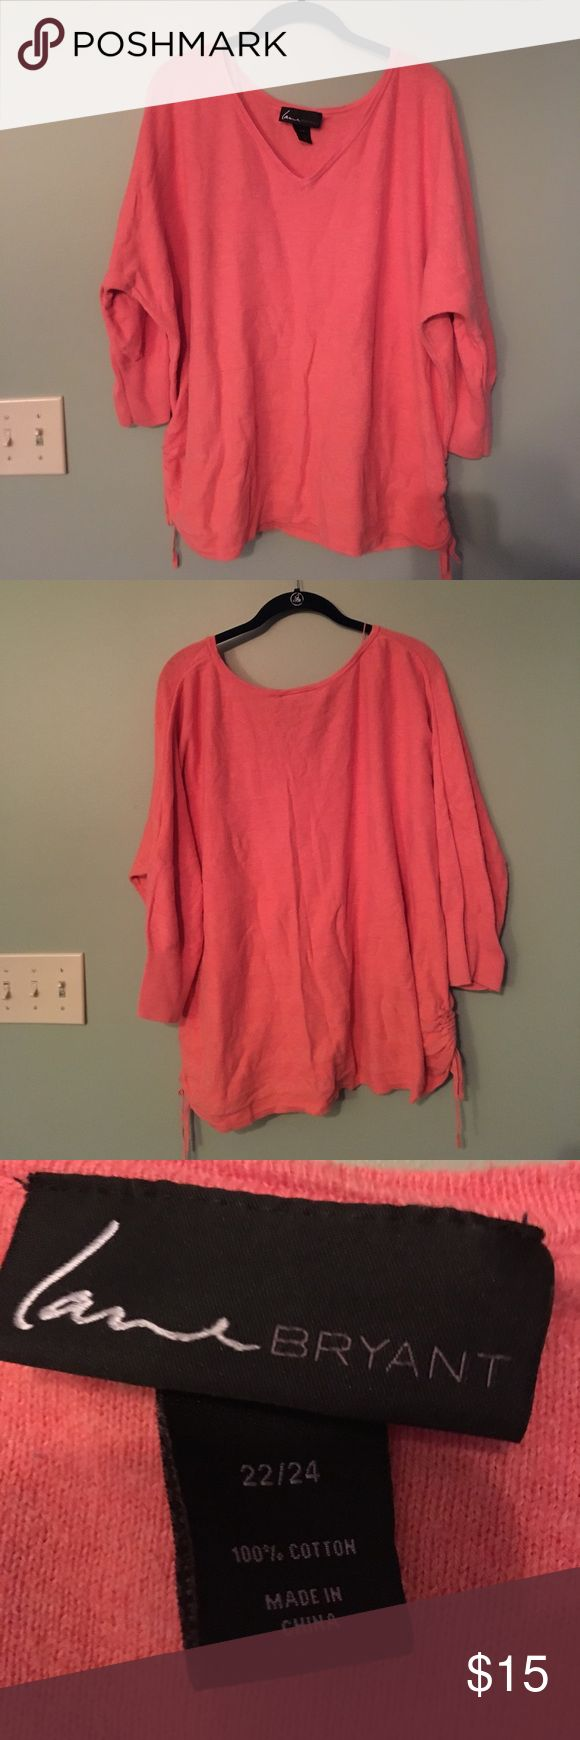 Lane Bryant size 22/24 coral sweater w/ ruching Lane Bryant size 22/24 coral sweater.  Sweater has sewn in stripe details and ruching on the bottom of each side that can be tied.  This is in excellent used condition- was only worn a few times.  It comes from a smoke free and pet free home. Lane Bryant Tops Tunics